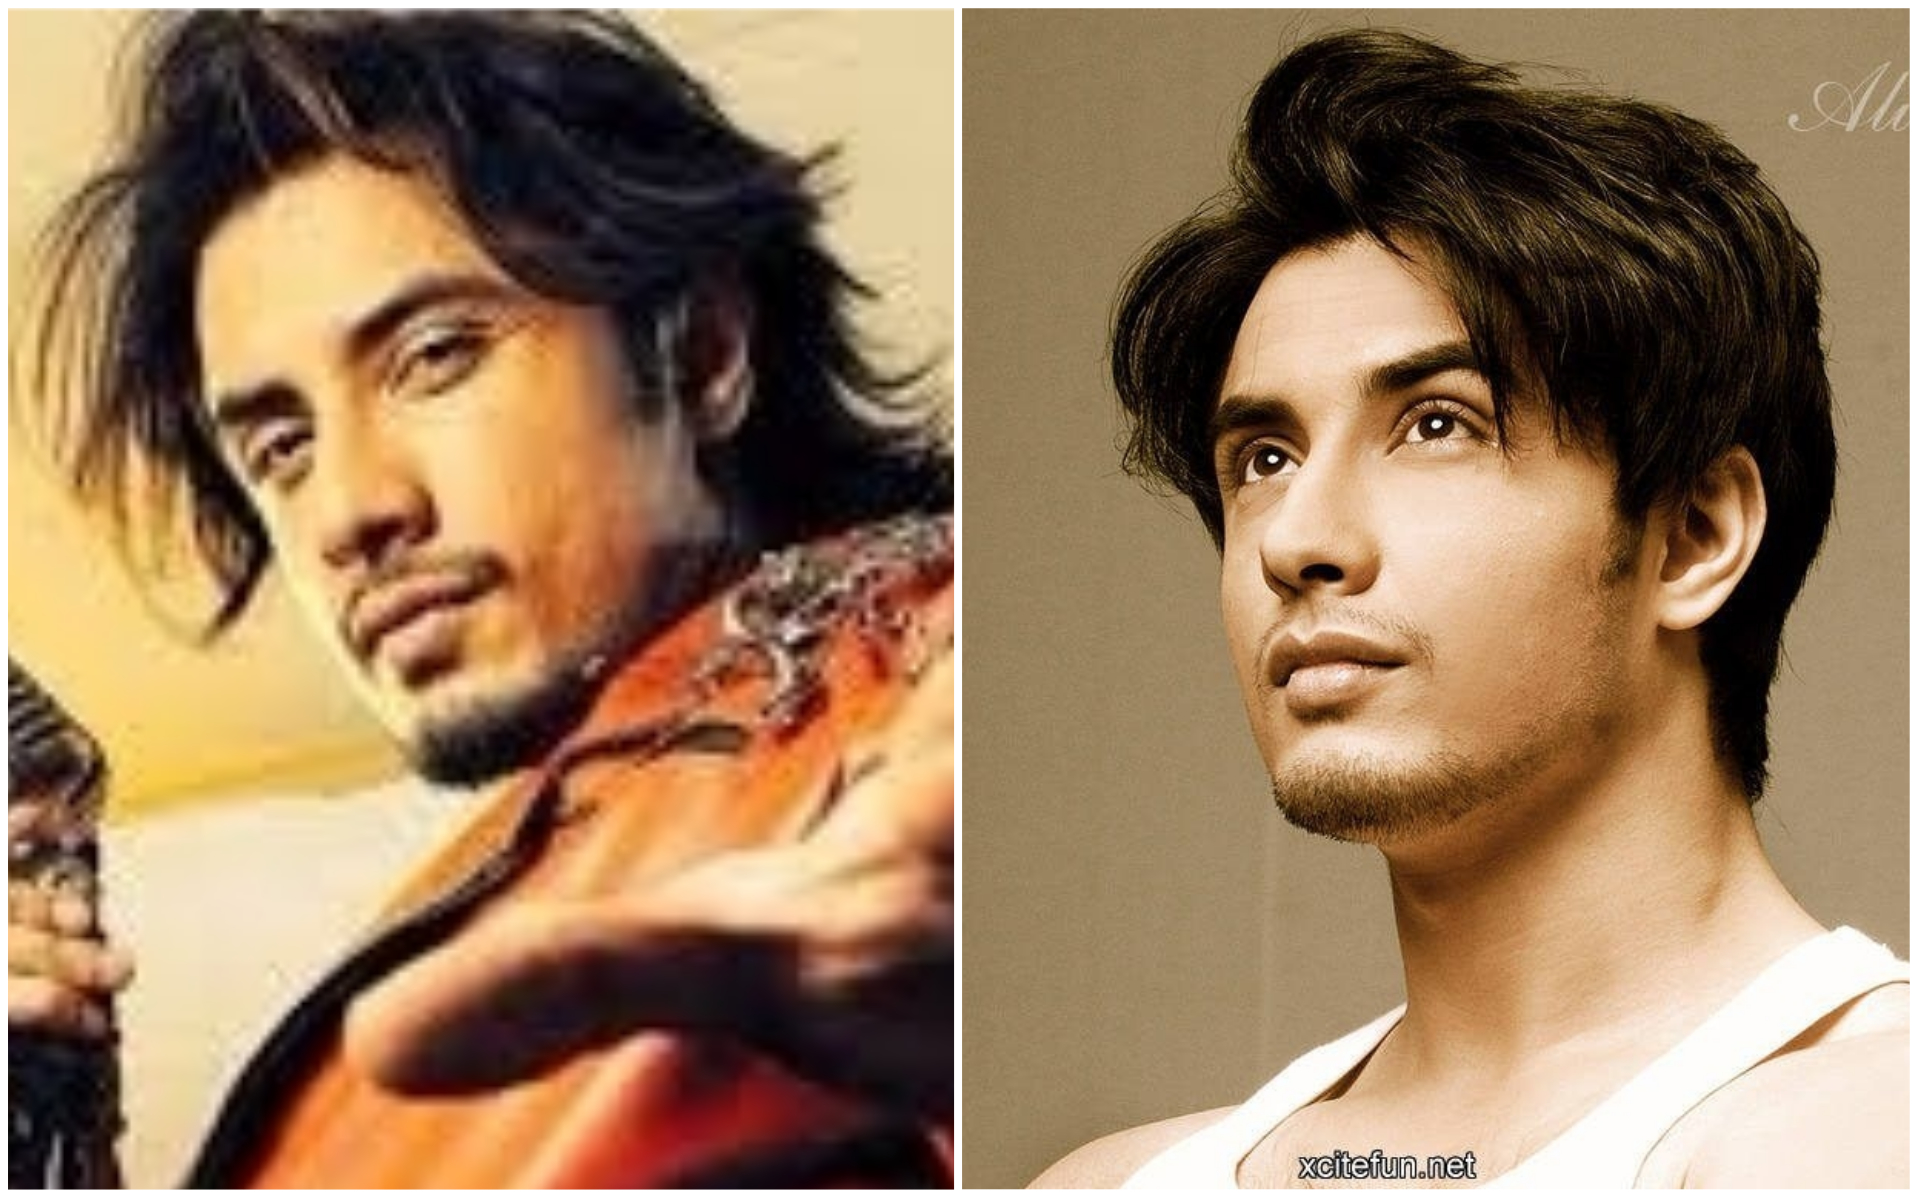 Long Hair Vs Short Hair Which Look Suits Pakistani Celebrities Better Reviewit Pk